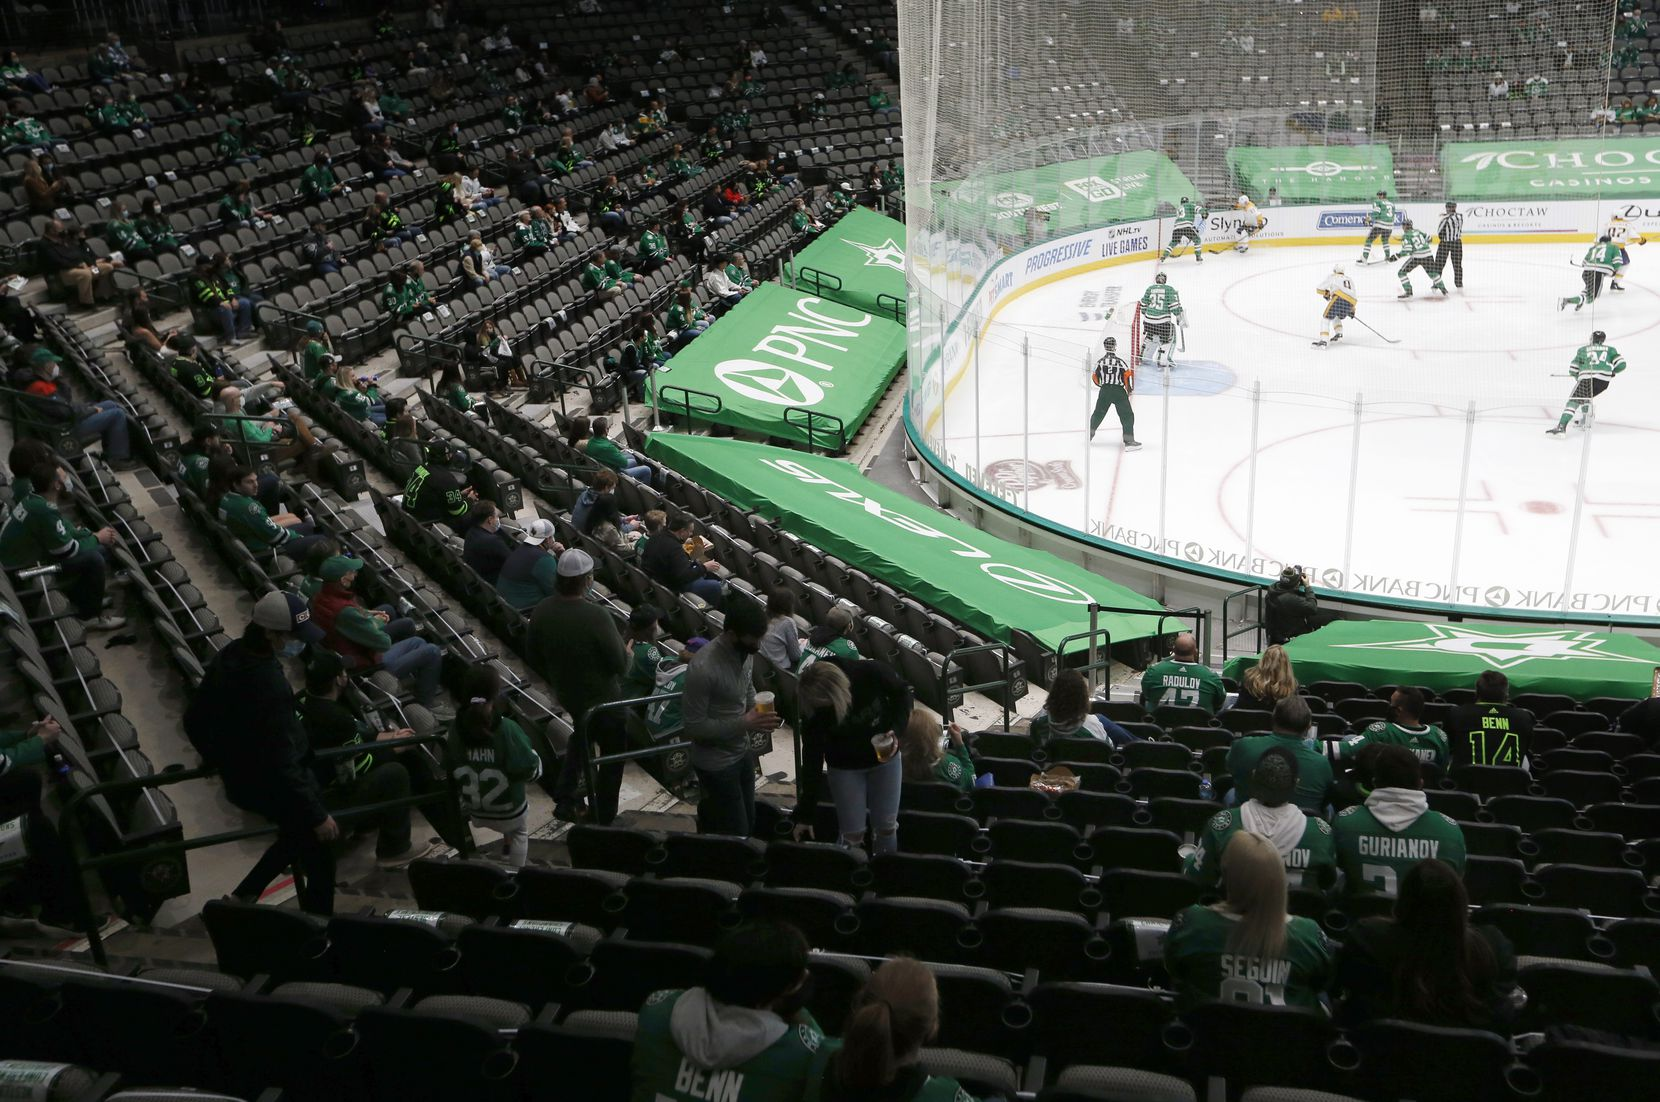 Dallas Stars fans watch as the Dallas Stars play against the Nashville Predators during the first period of play in the home opener at American Airlines Center on Friday, January 22, 2021in Dallas. (Vernon Bryant/The Dallas Morning News)